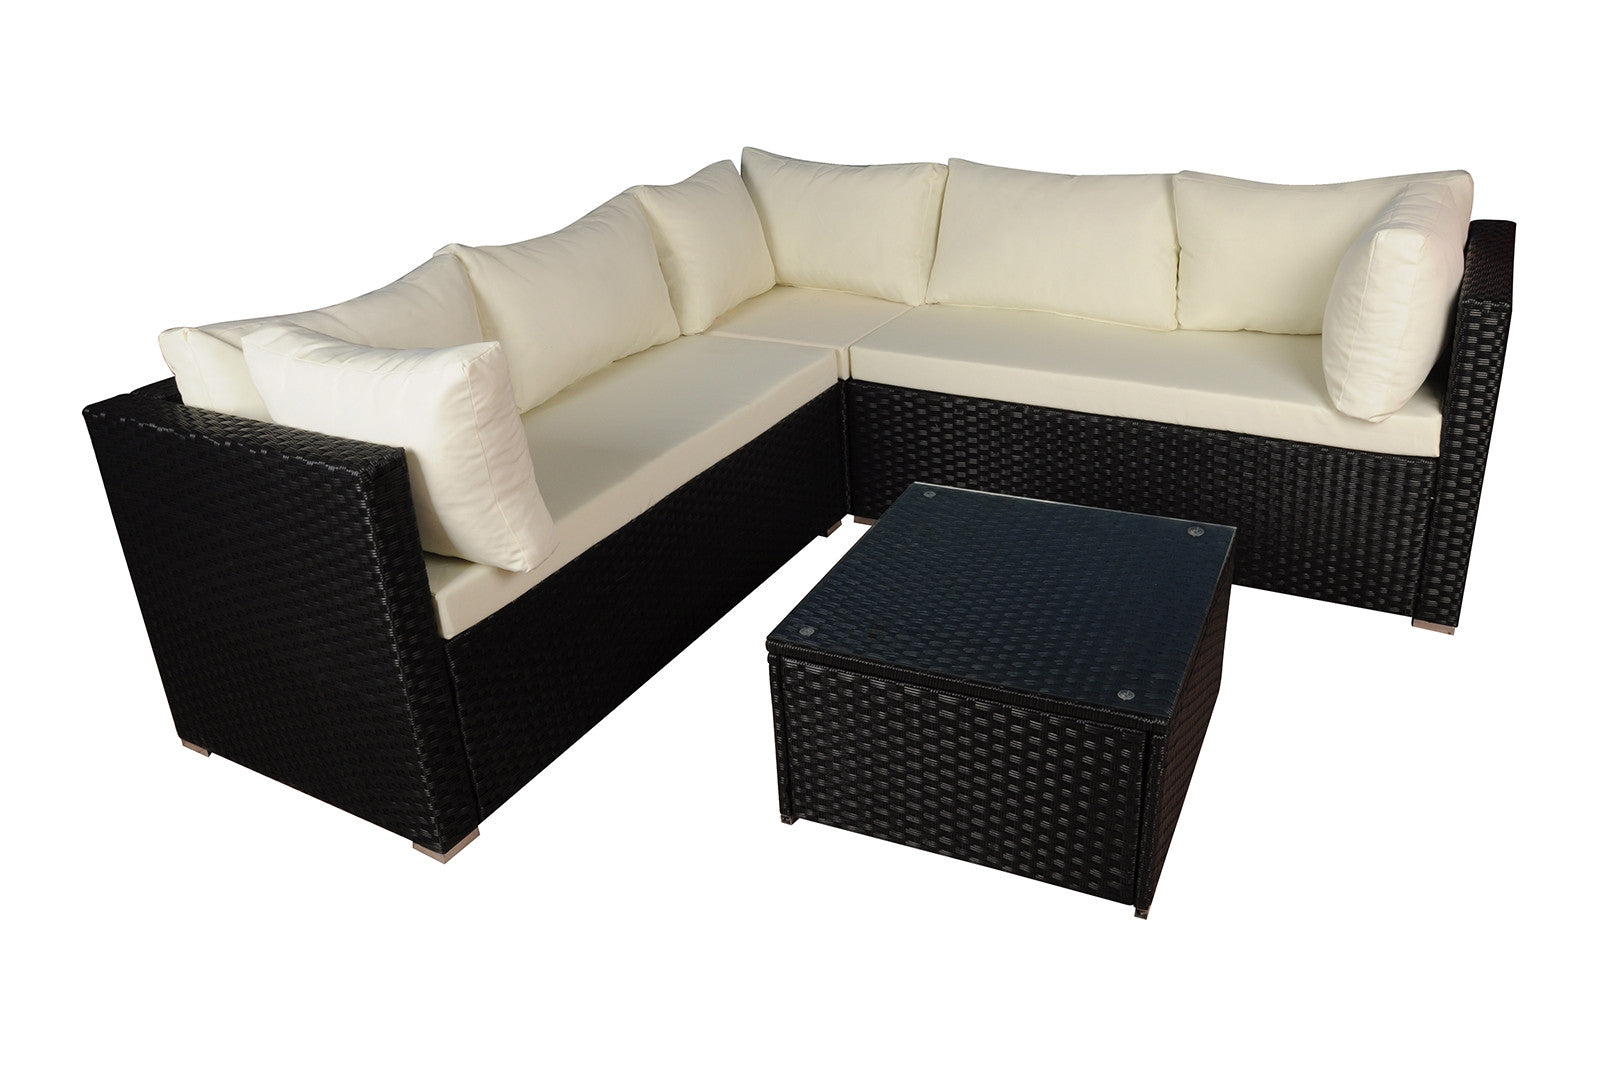 ... Honolulu Modern Outdoor Sectional With Coffee Table In Ivory